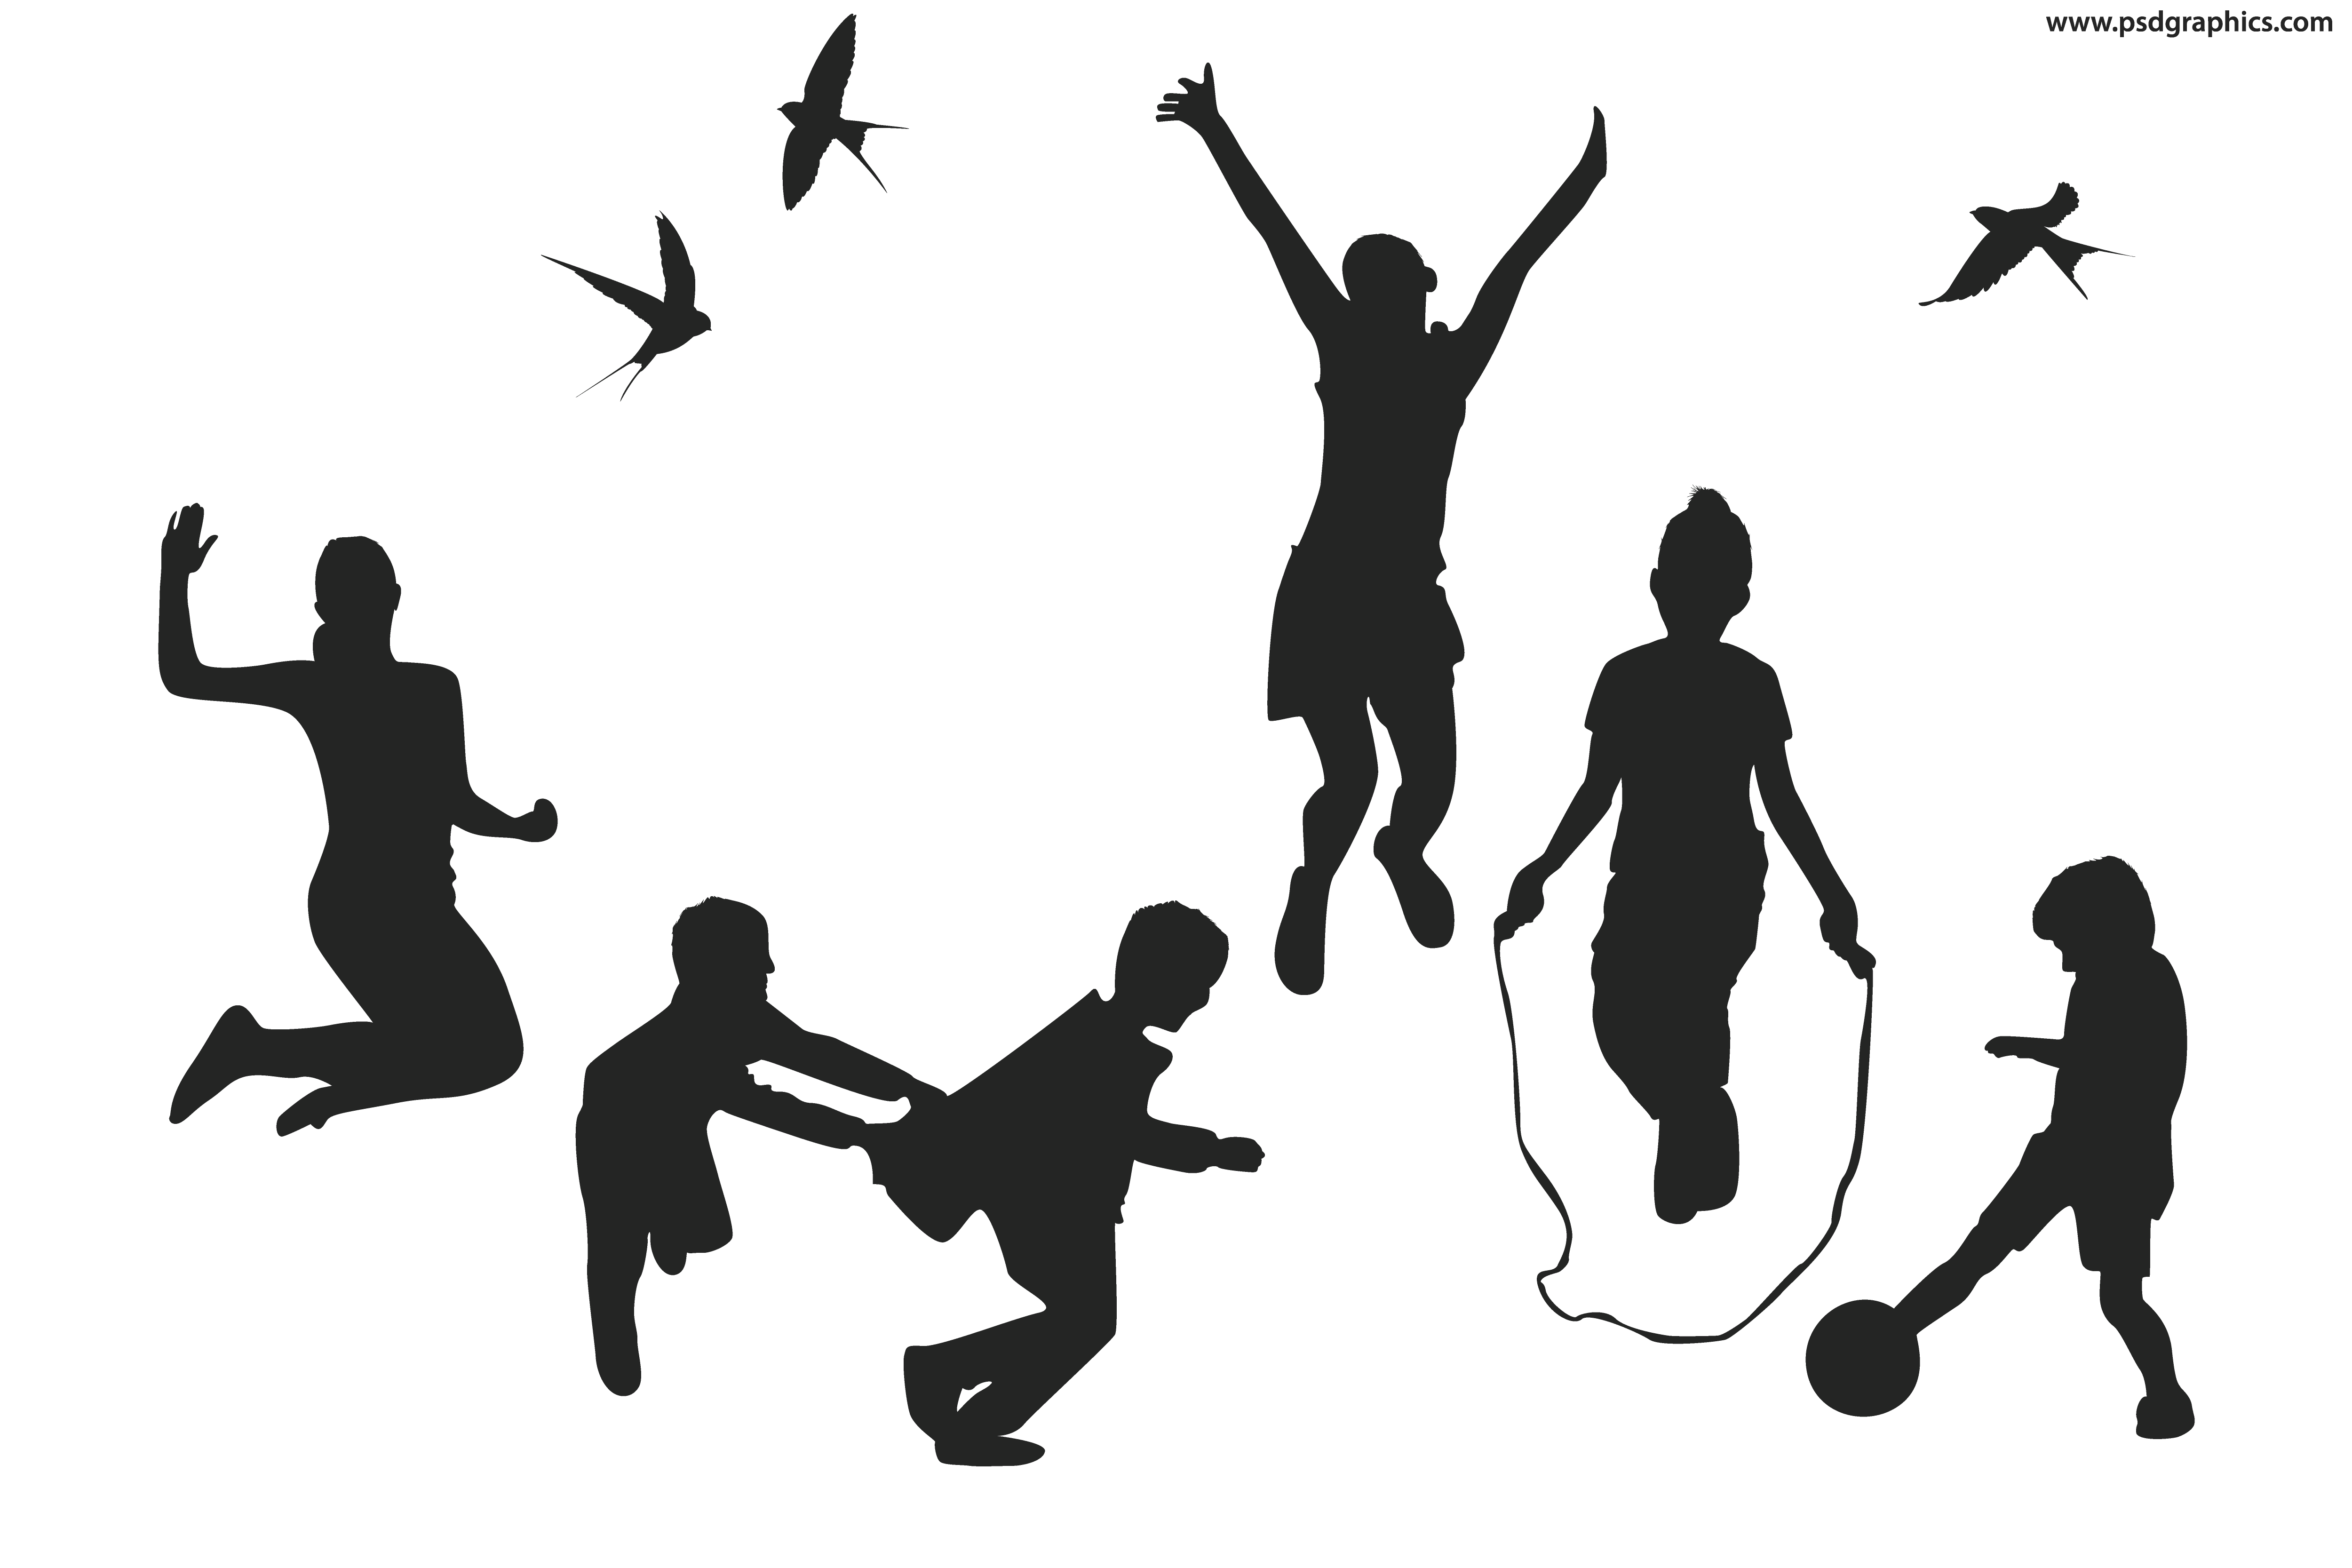 Child silhouette png vector free. Playful children silhouettes psdgraphics